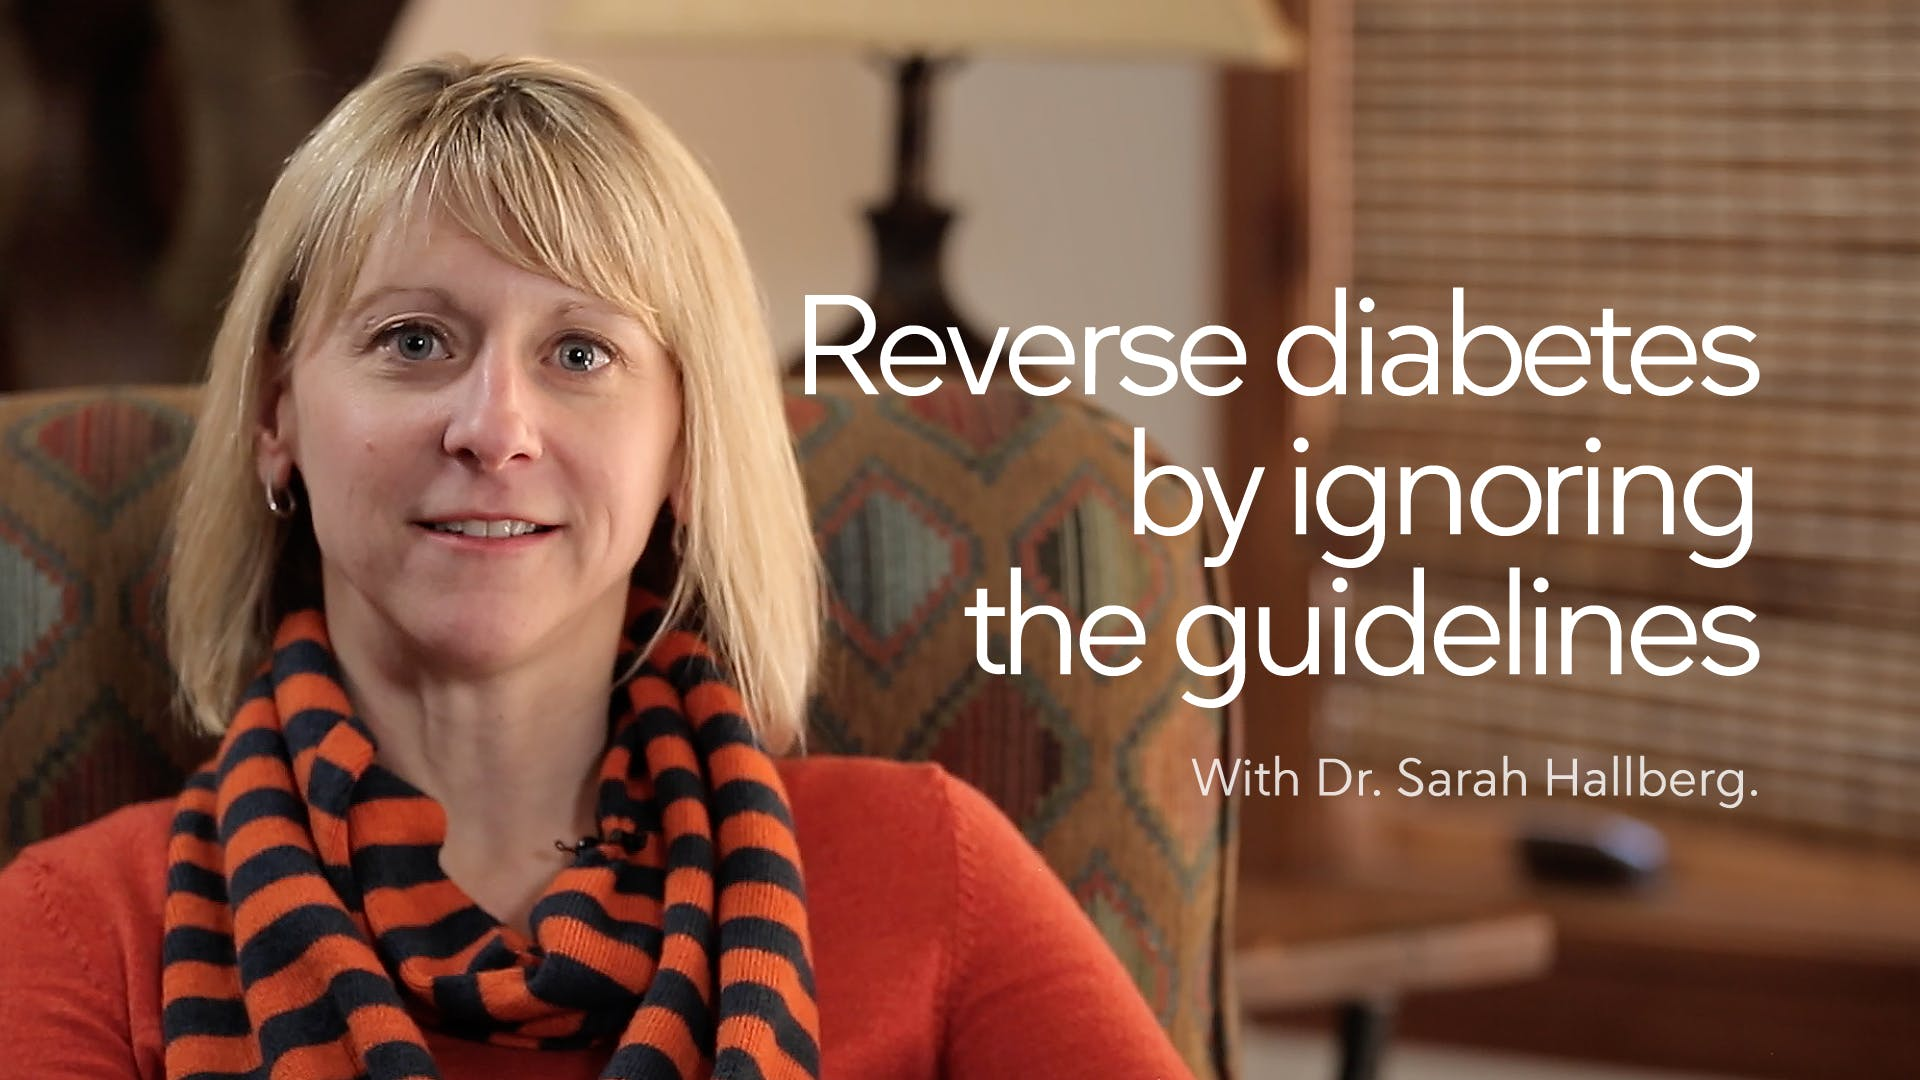 Reverse diabetes by ignoring the guidelines